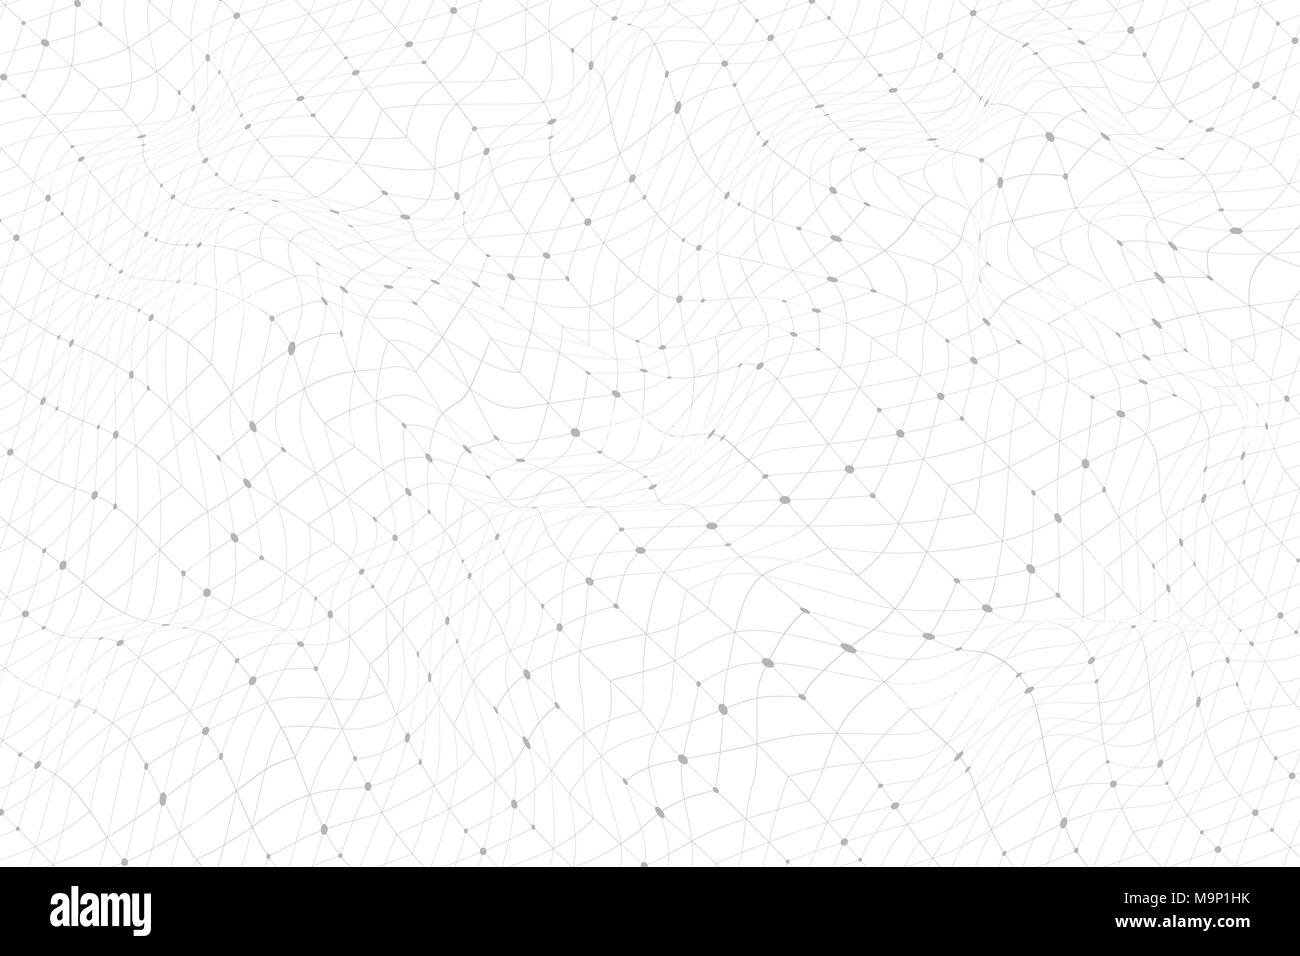 Abstract background with lines and dots distorted on a white background. Monochrome image. Abstract dynamical rippled surface. Vector stripe deformation background. - Stock Image